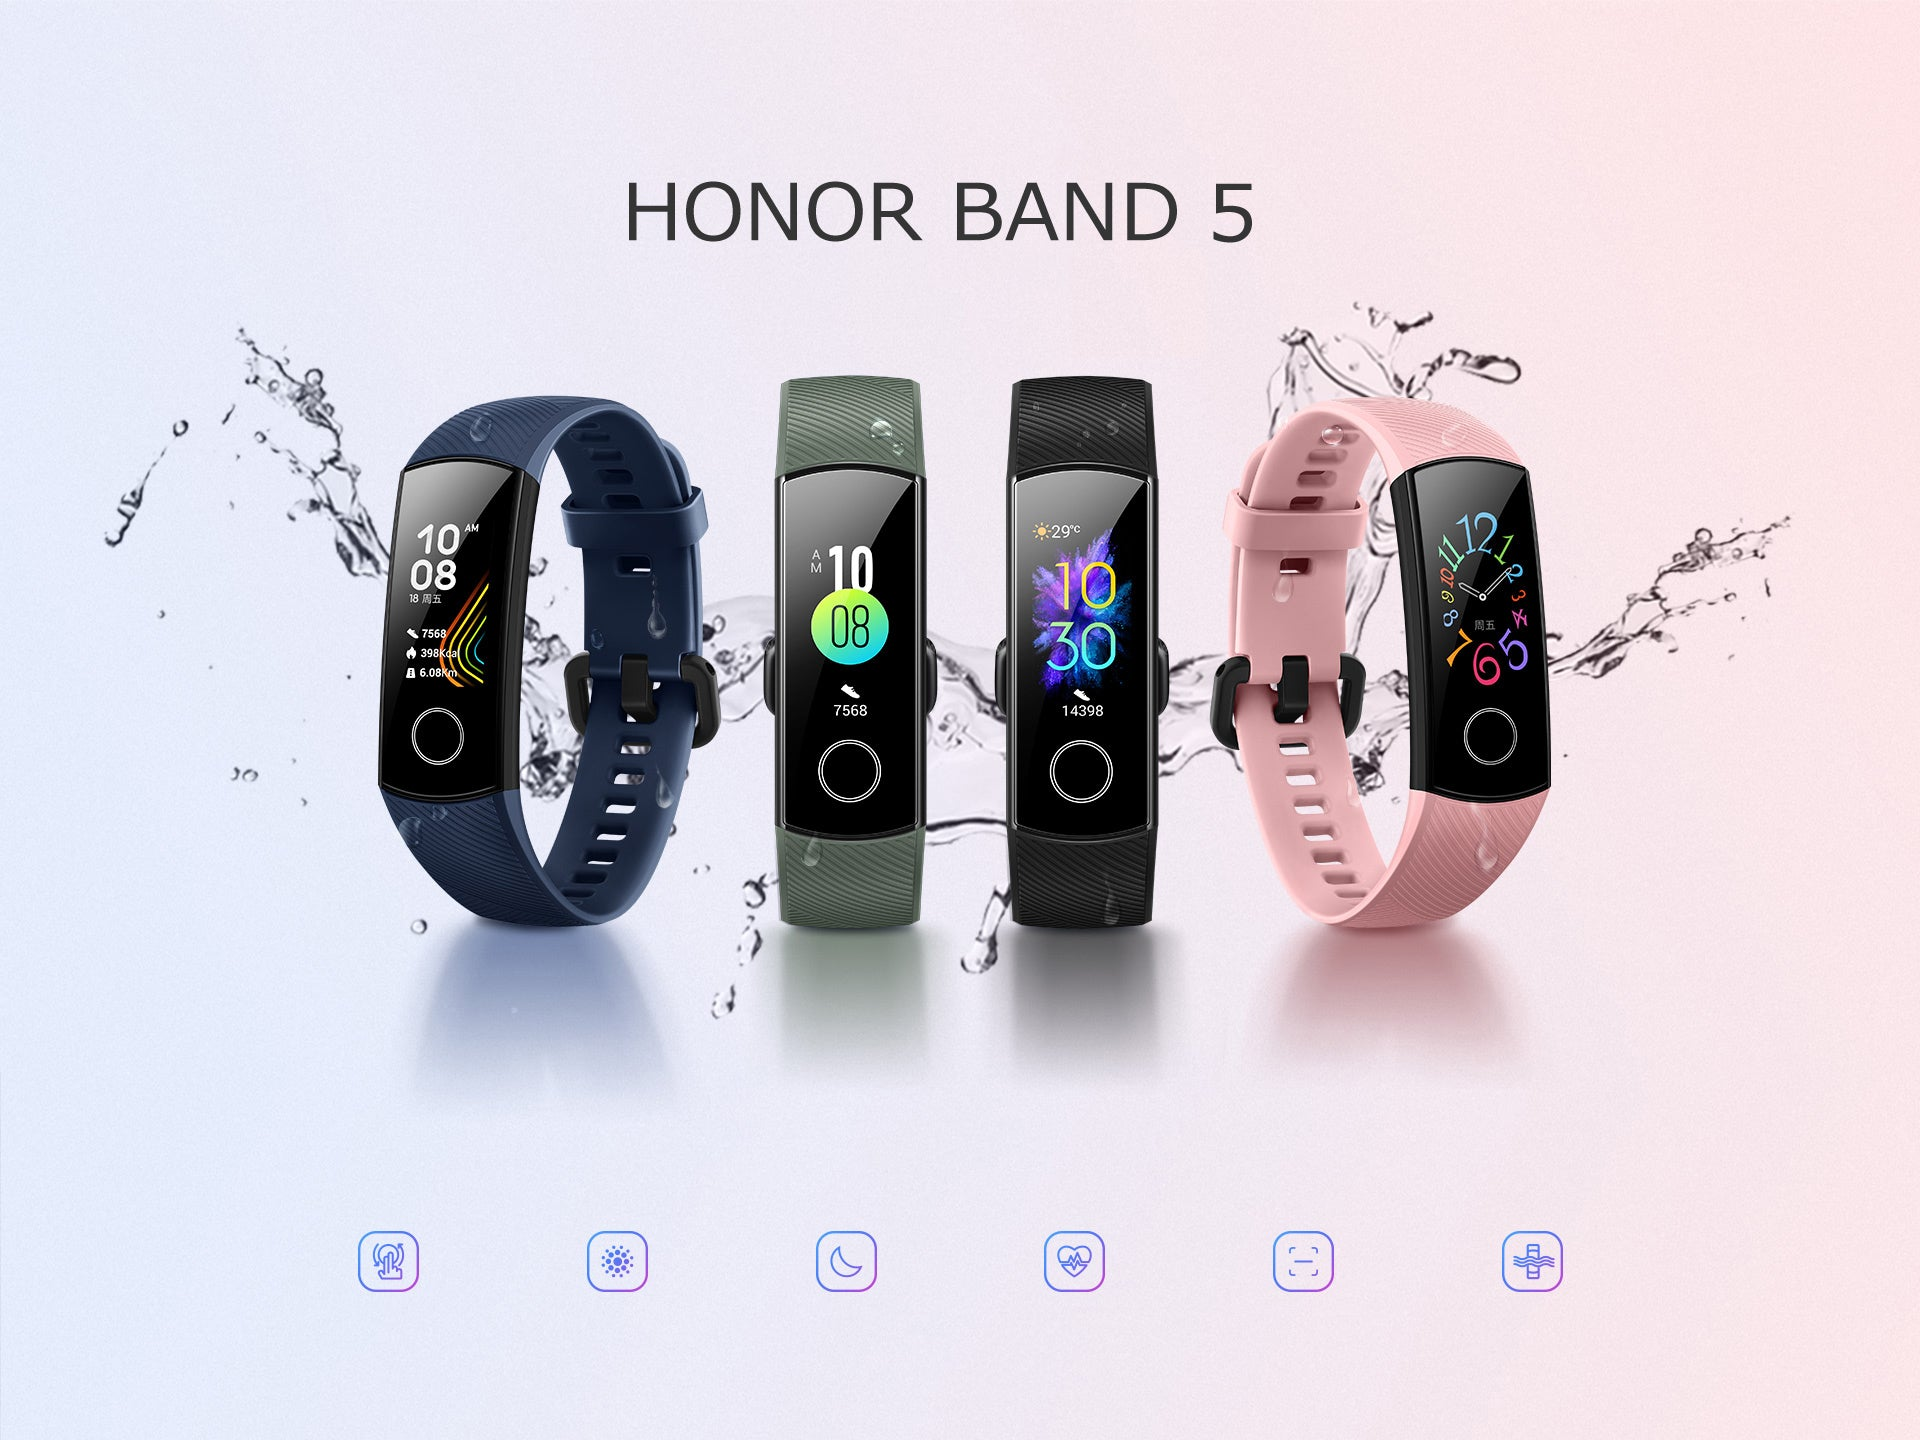 HONOR BAND 5 PRICE IN INDIA ONLINE